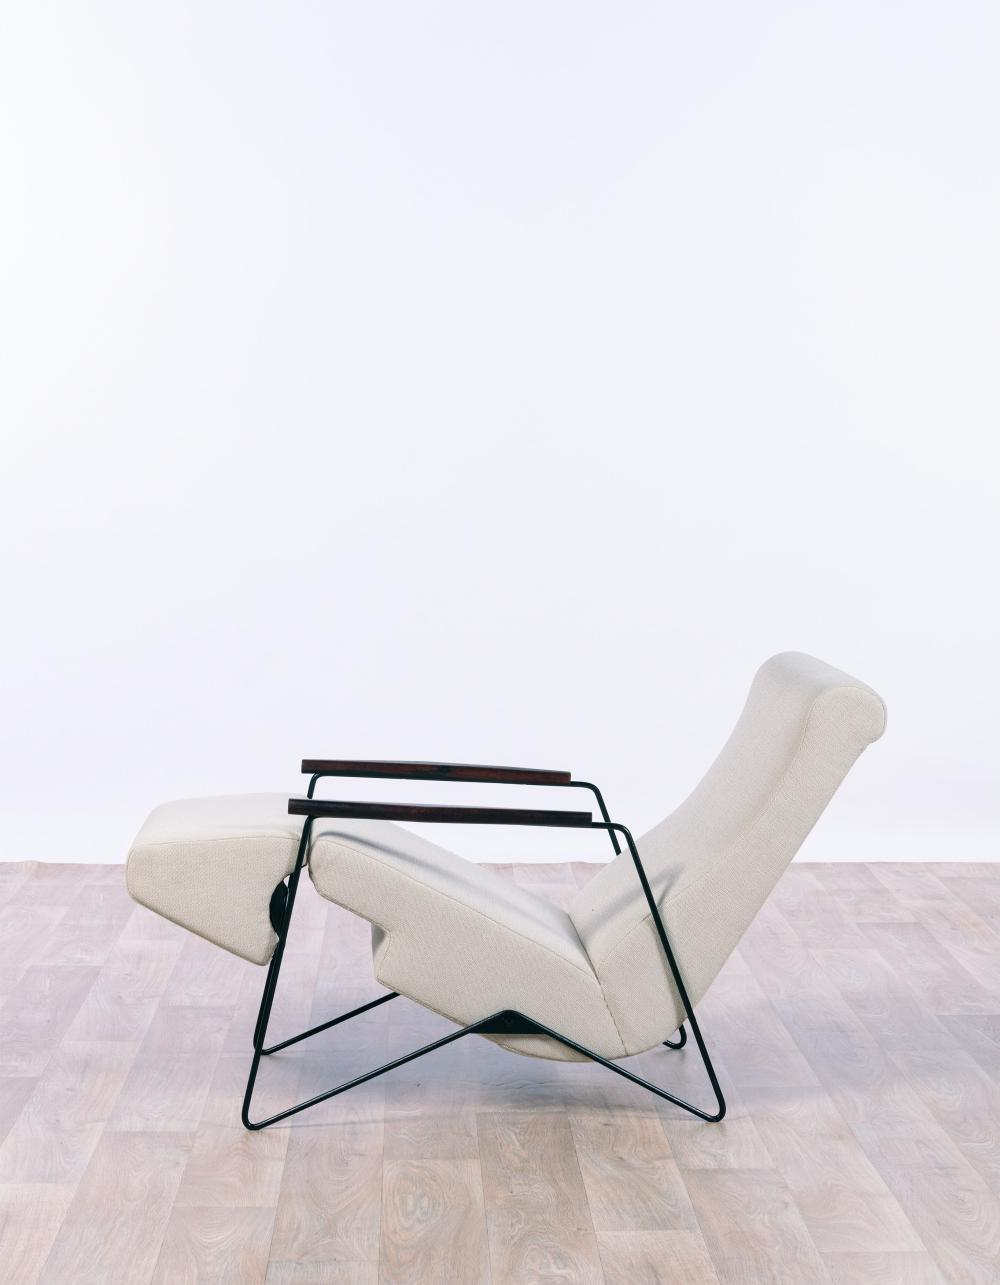 Fauteuil Inclinable Design Carlo Hauner 1927 1996 Fauteuil Inclinable